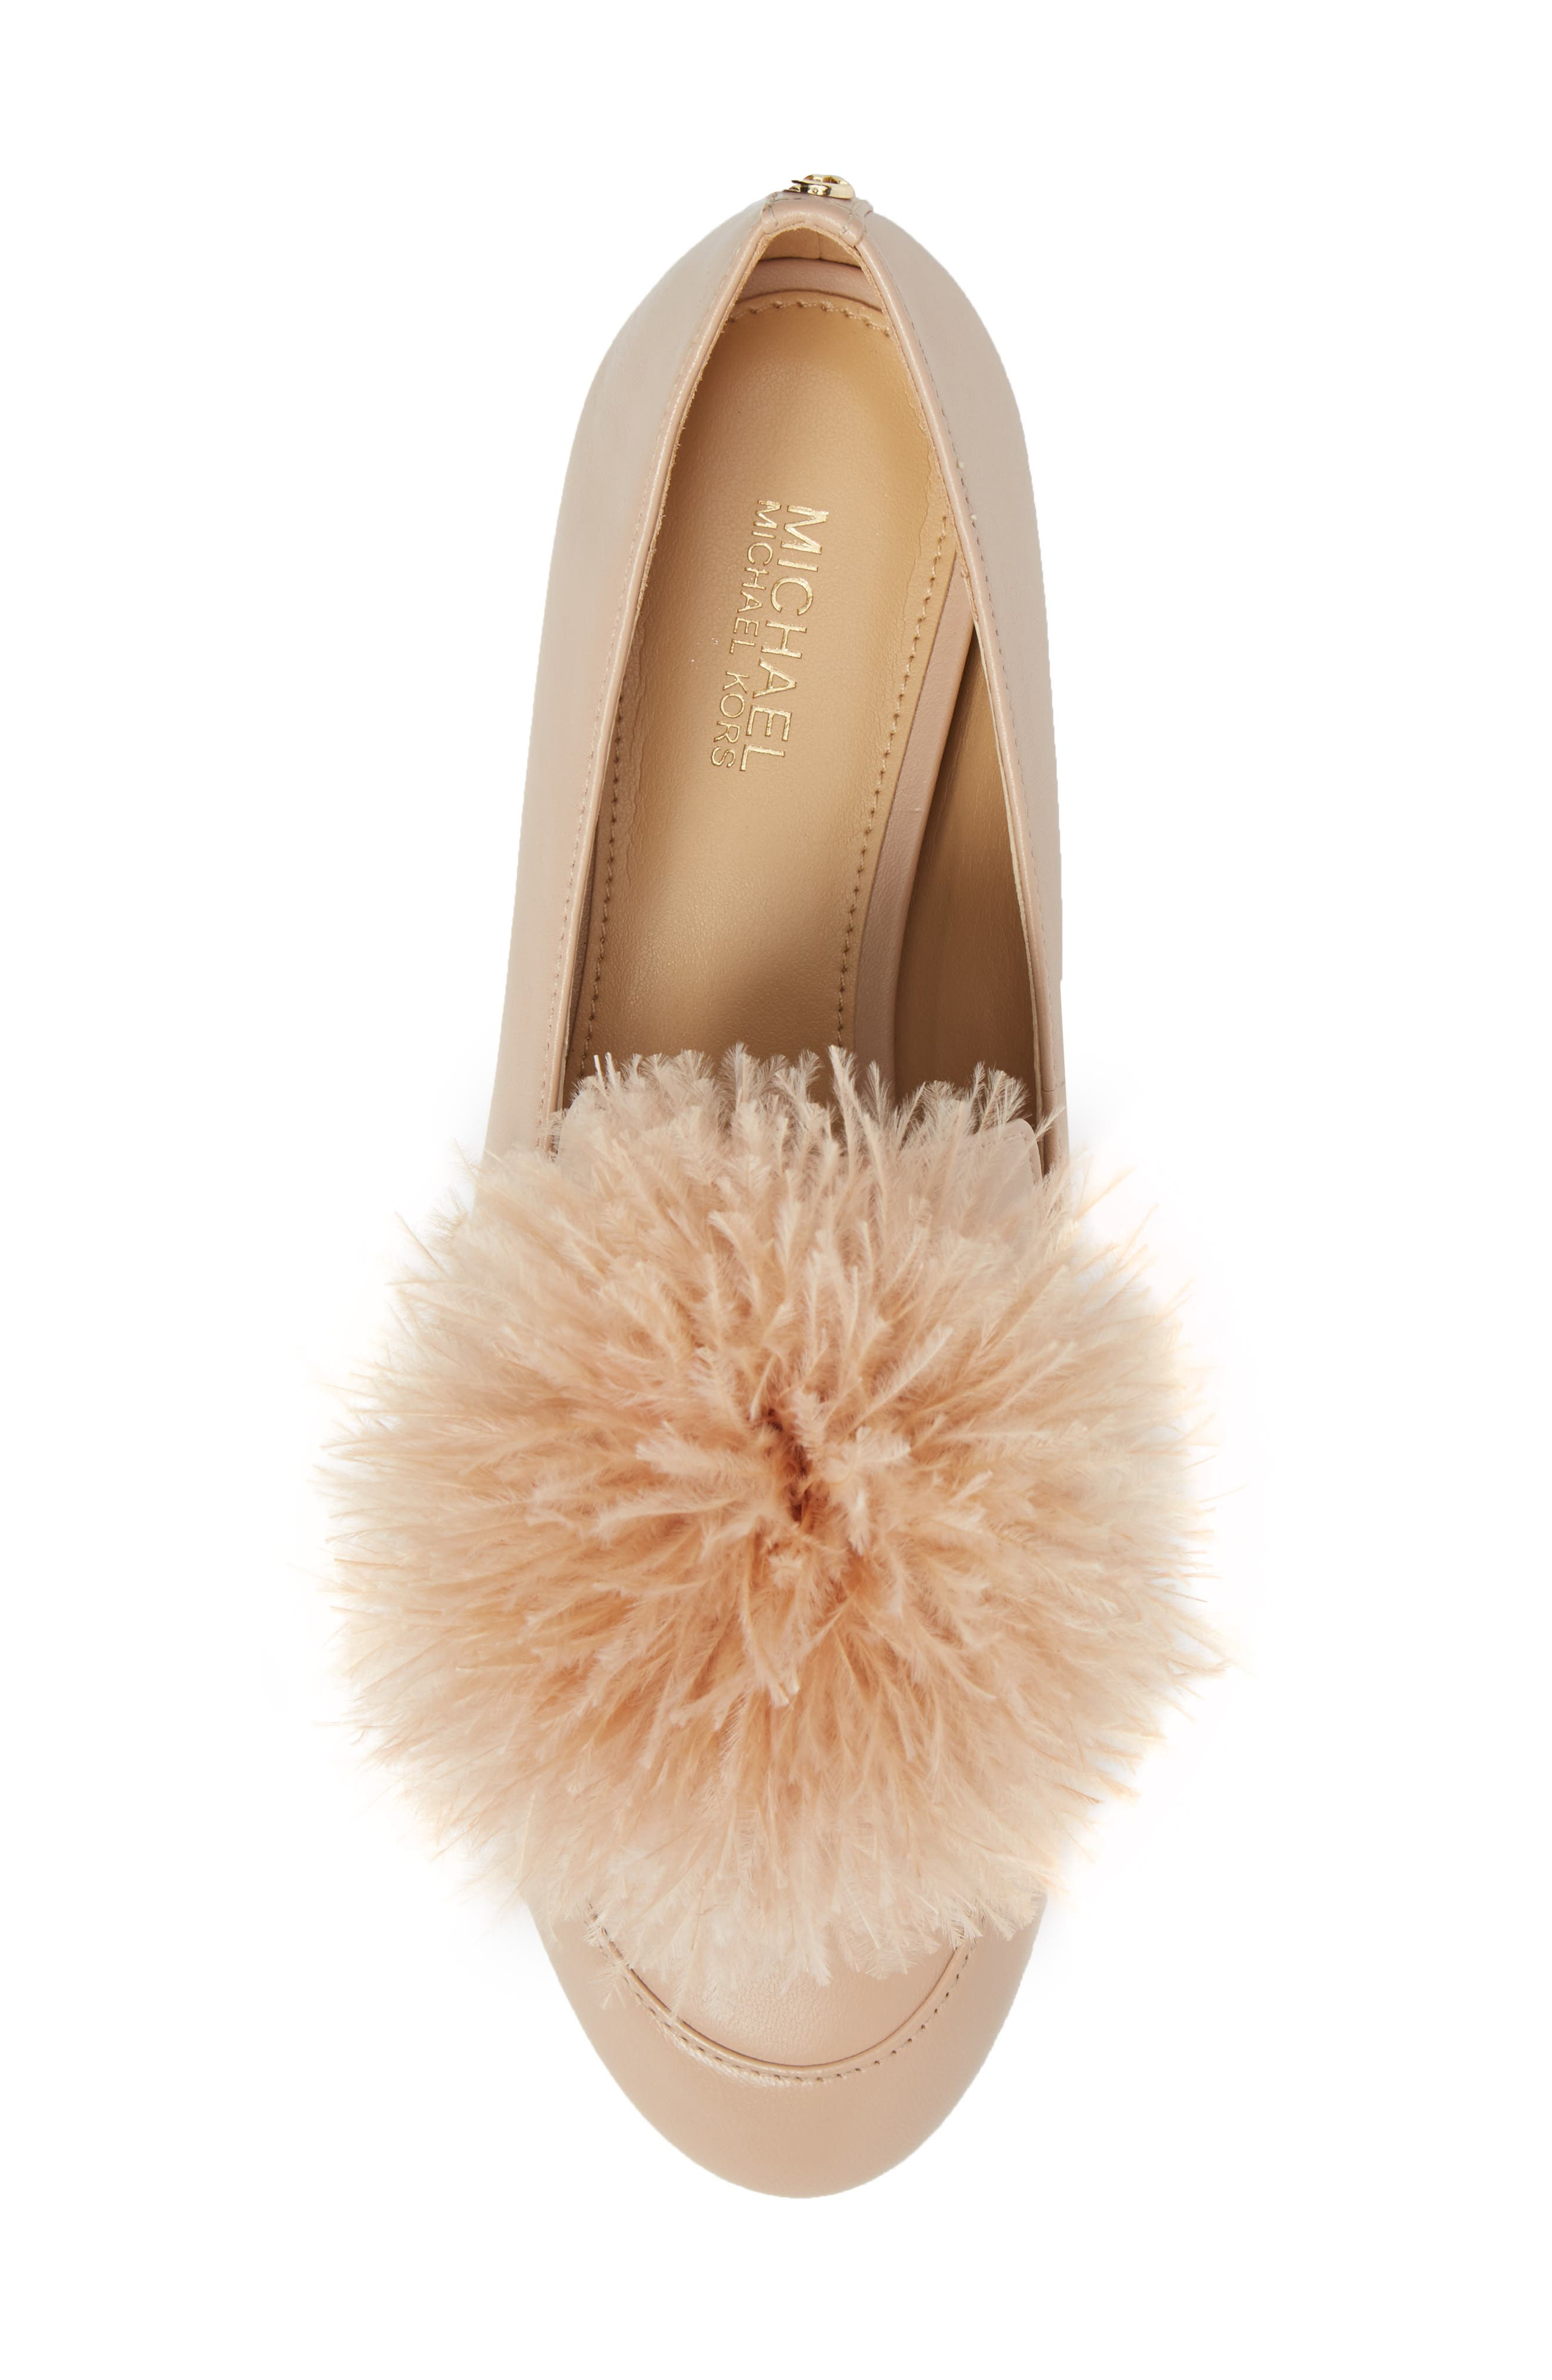 Fara Feather Pom Loafer,                             Alternate thumbnail 5, color,                             Oyster Nappa Leather